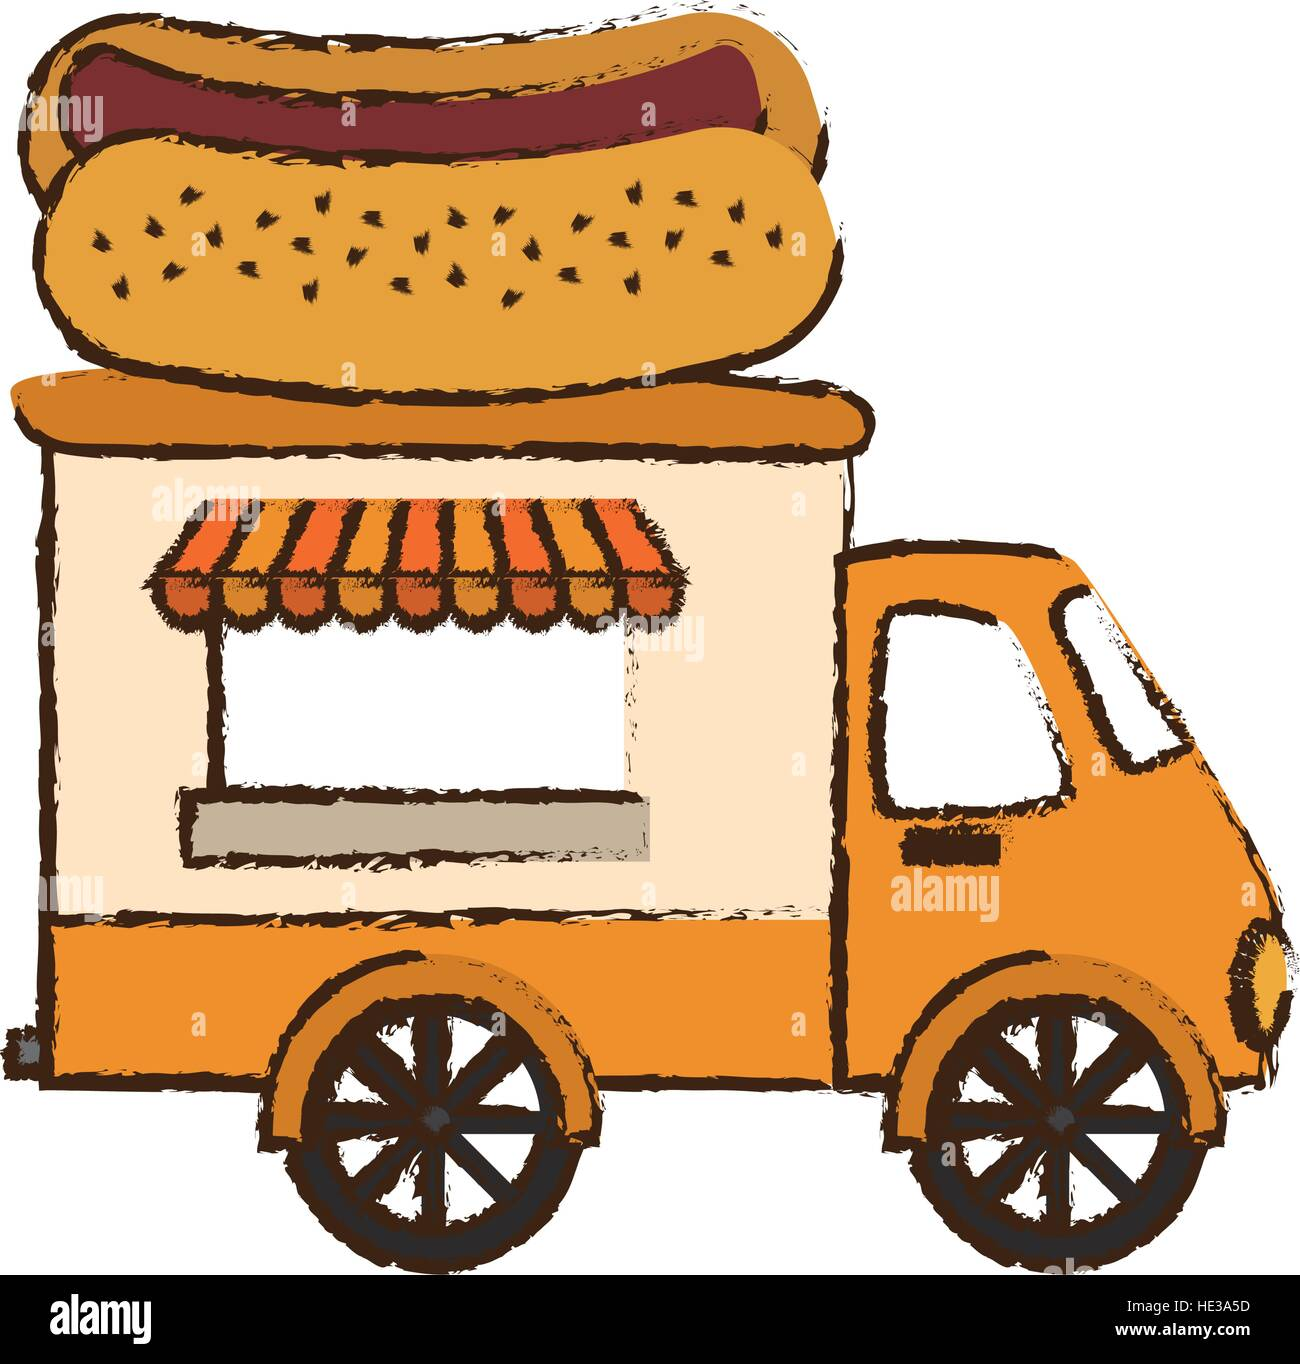 Fast Food Truck With Hot Dog Icon Over White Background Colorful Design Vector Illustration